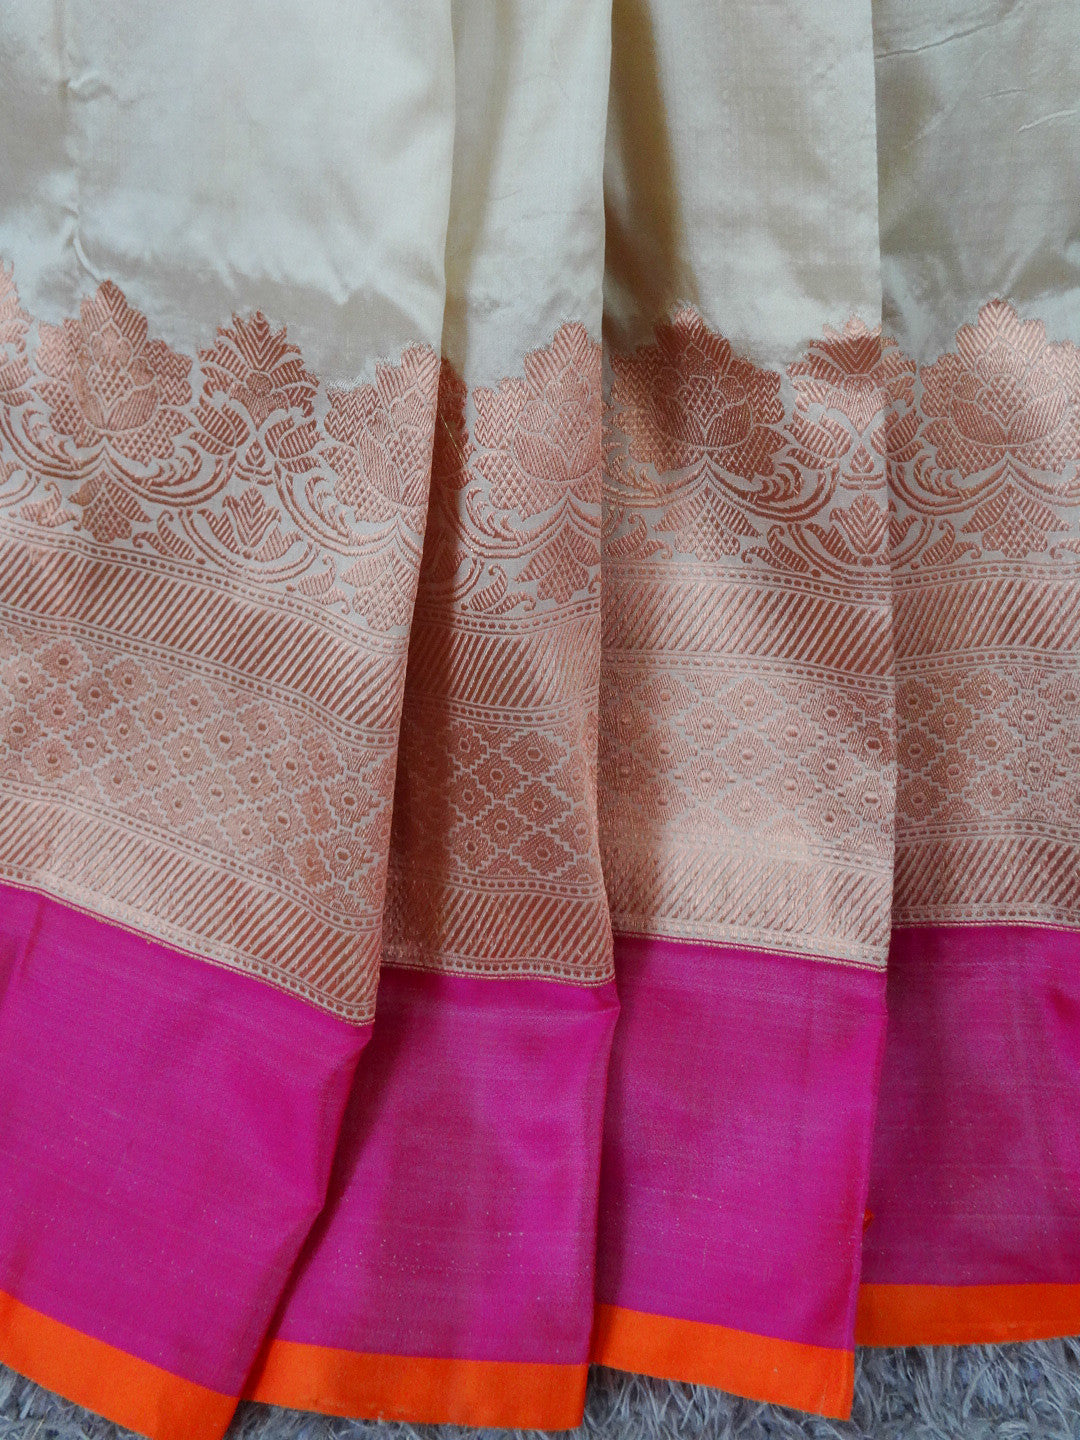 Banarasee Handloom Pure Katan Silk Saree With Zari Floral Border-Off White